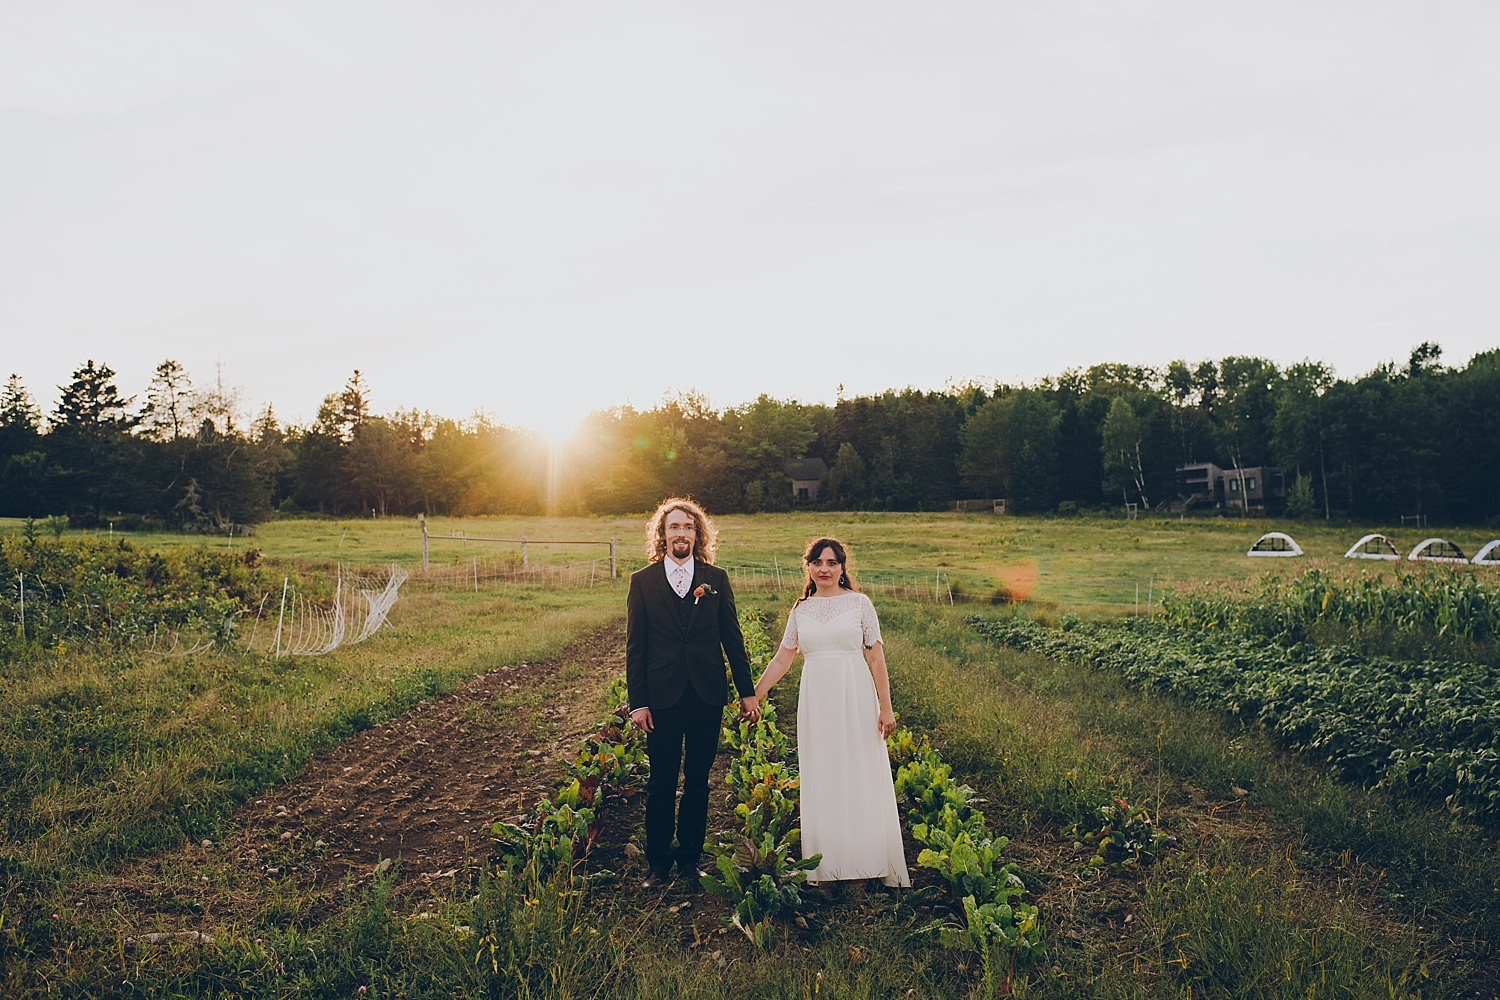 Bride and Groom Portrait in Organic garden